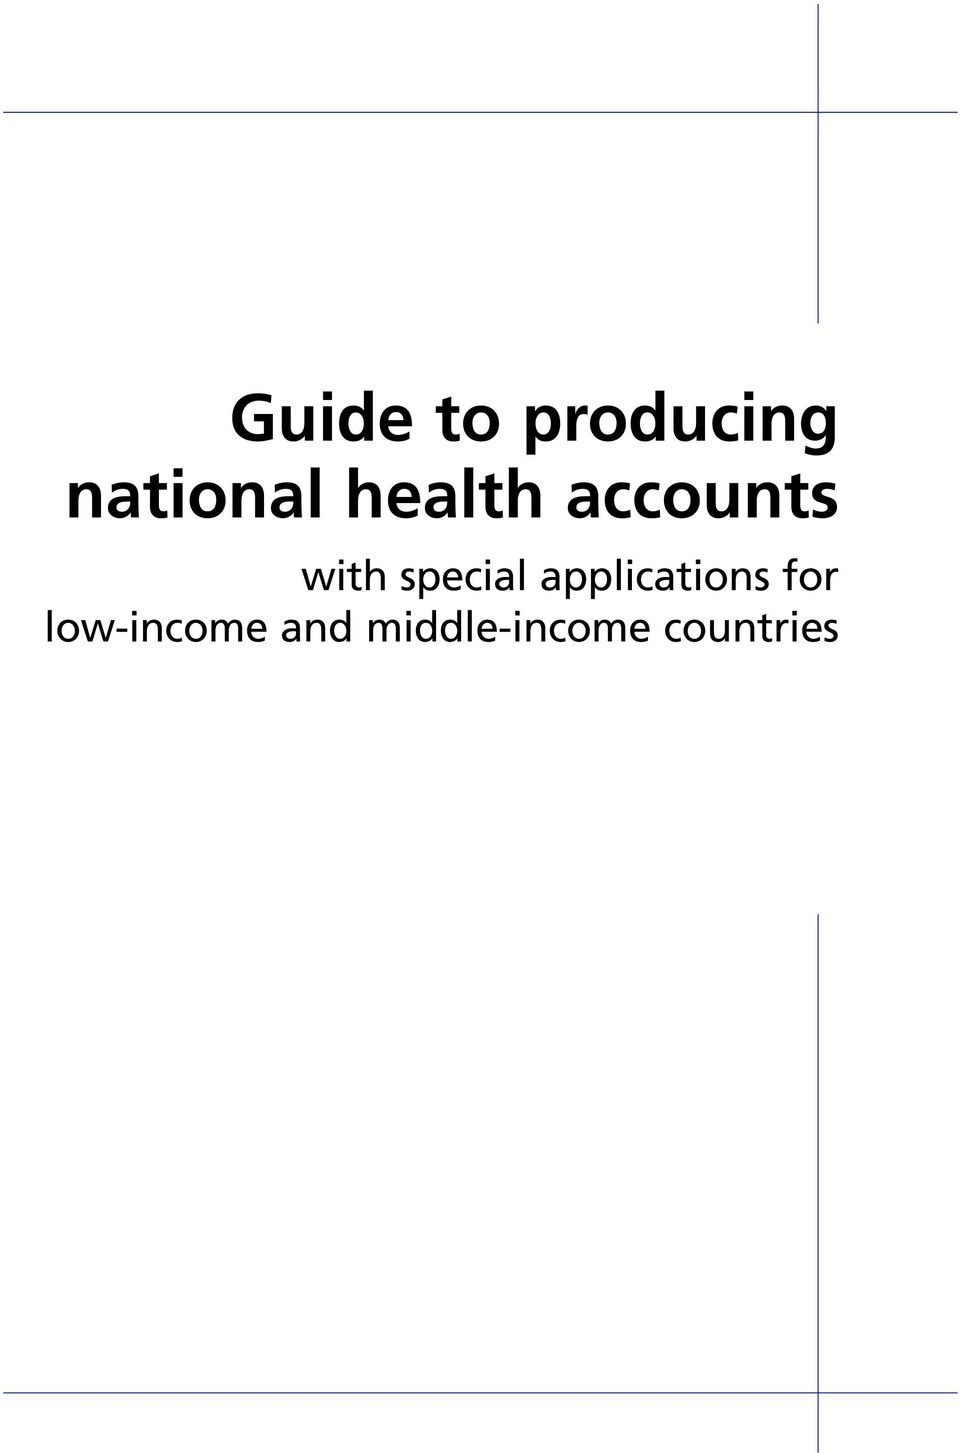 guide to producing national health accounts world health organization